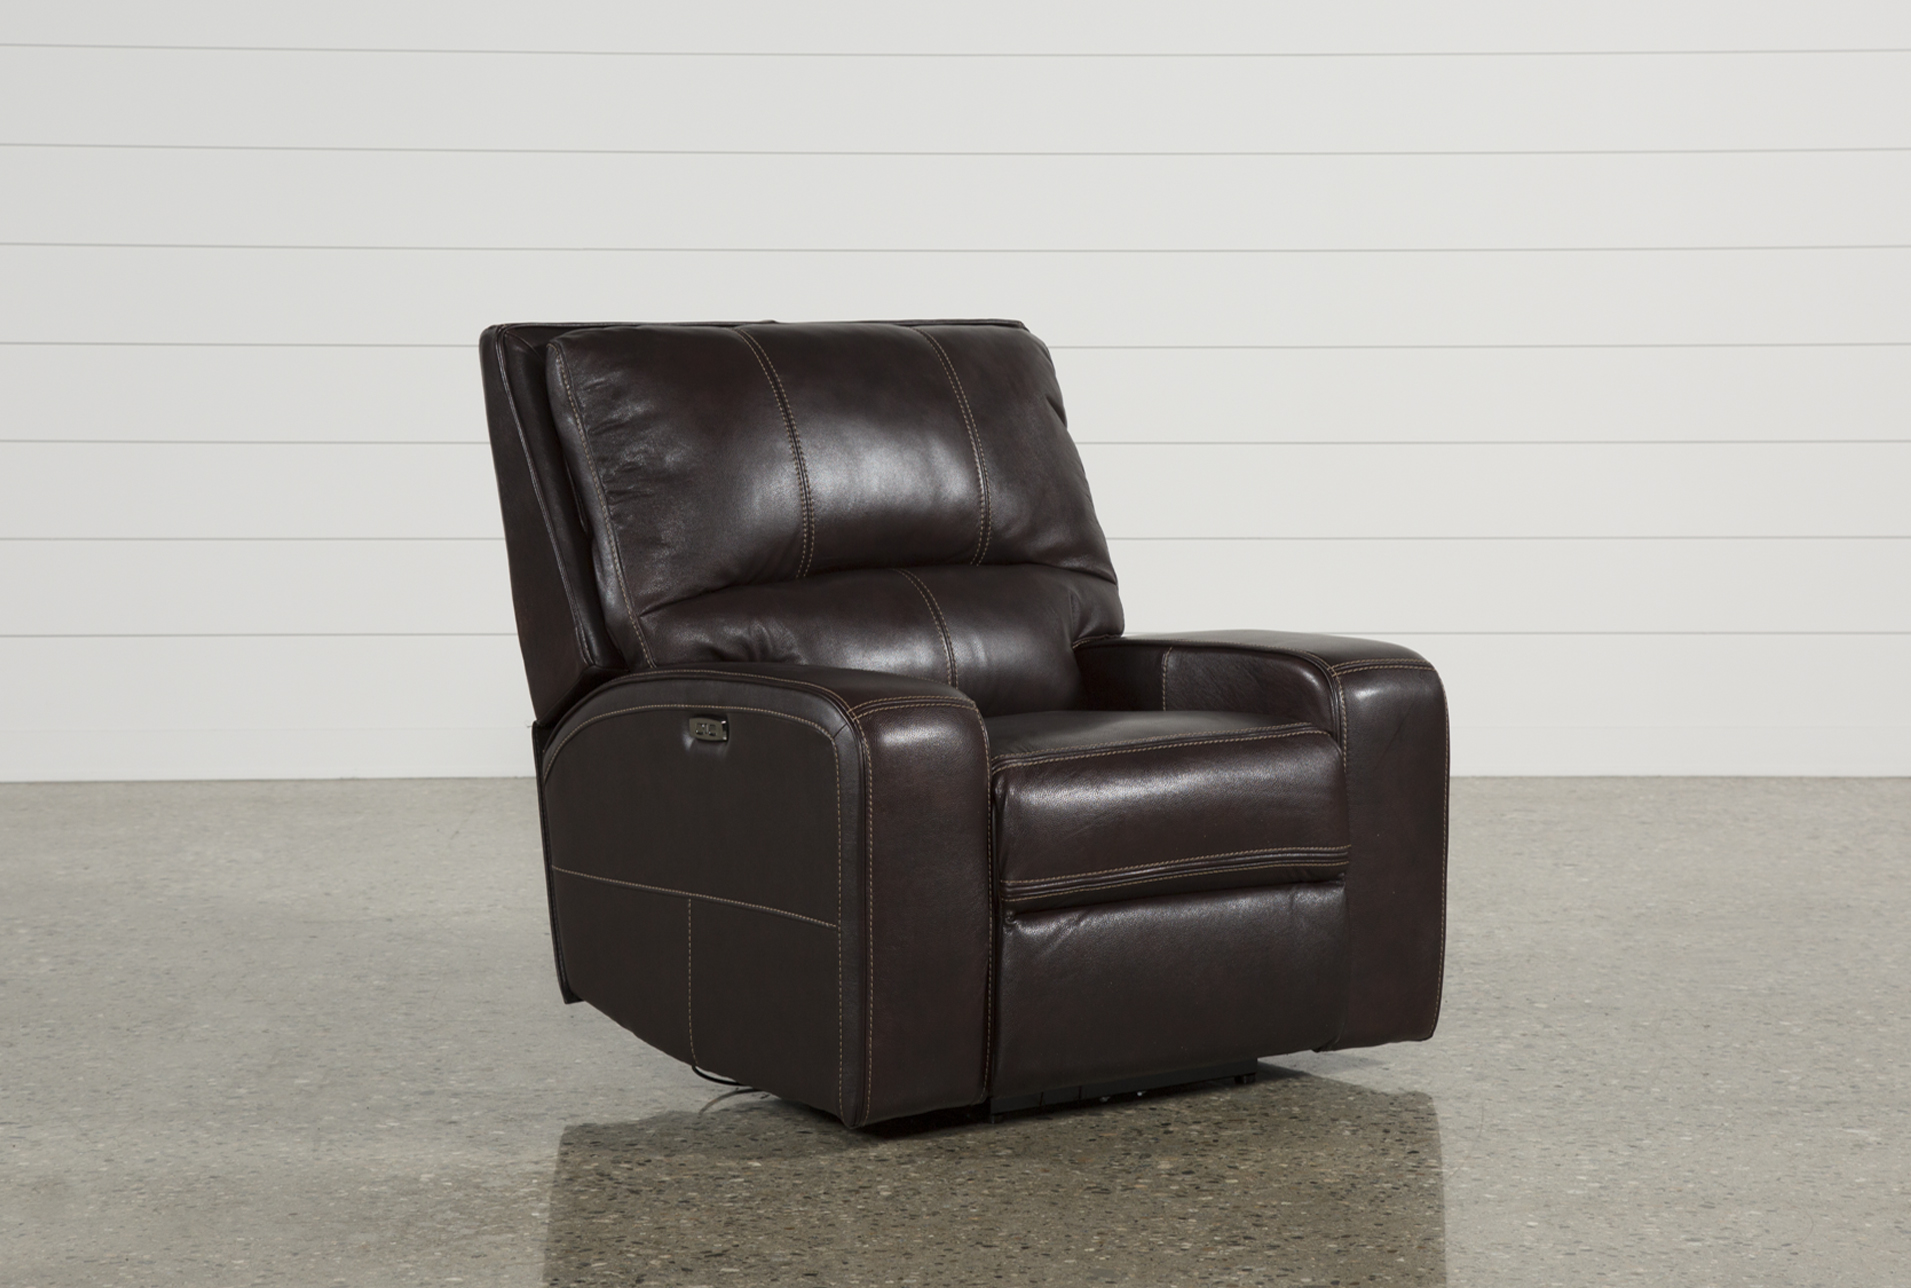 Clyde Dark Brown Leather Power Recliner W/Power Headrest U0026amp; Usb (Qty: 1)  Has Been Successfully Added To Your Cart.